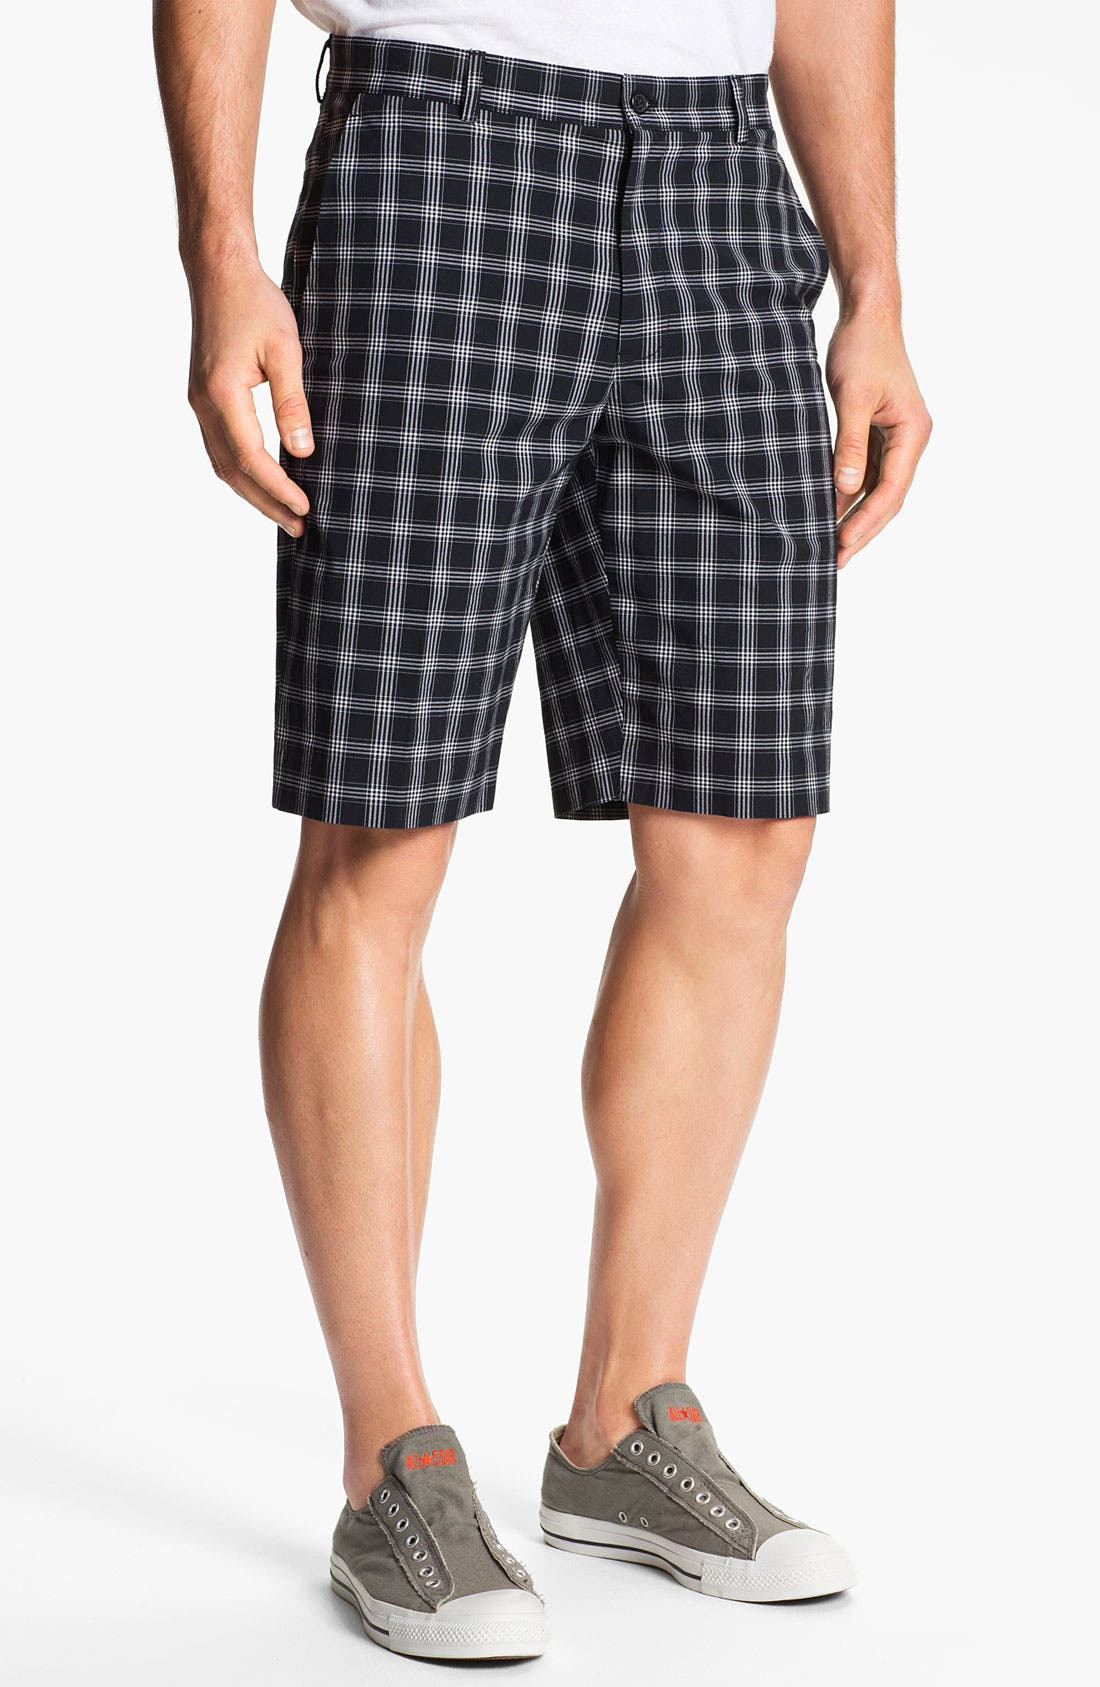 Main Image - Michael Kors 'Noah' Flat Front Shorts (Online Only)